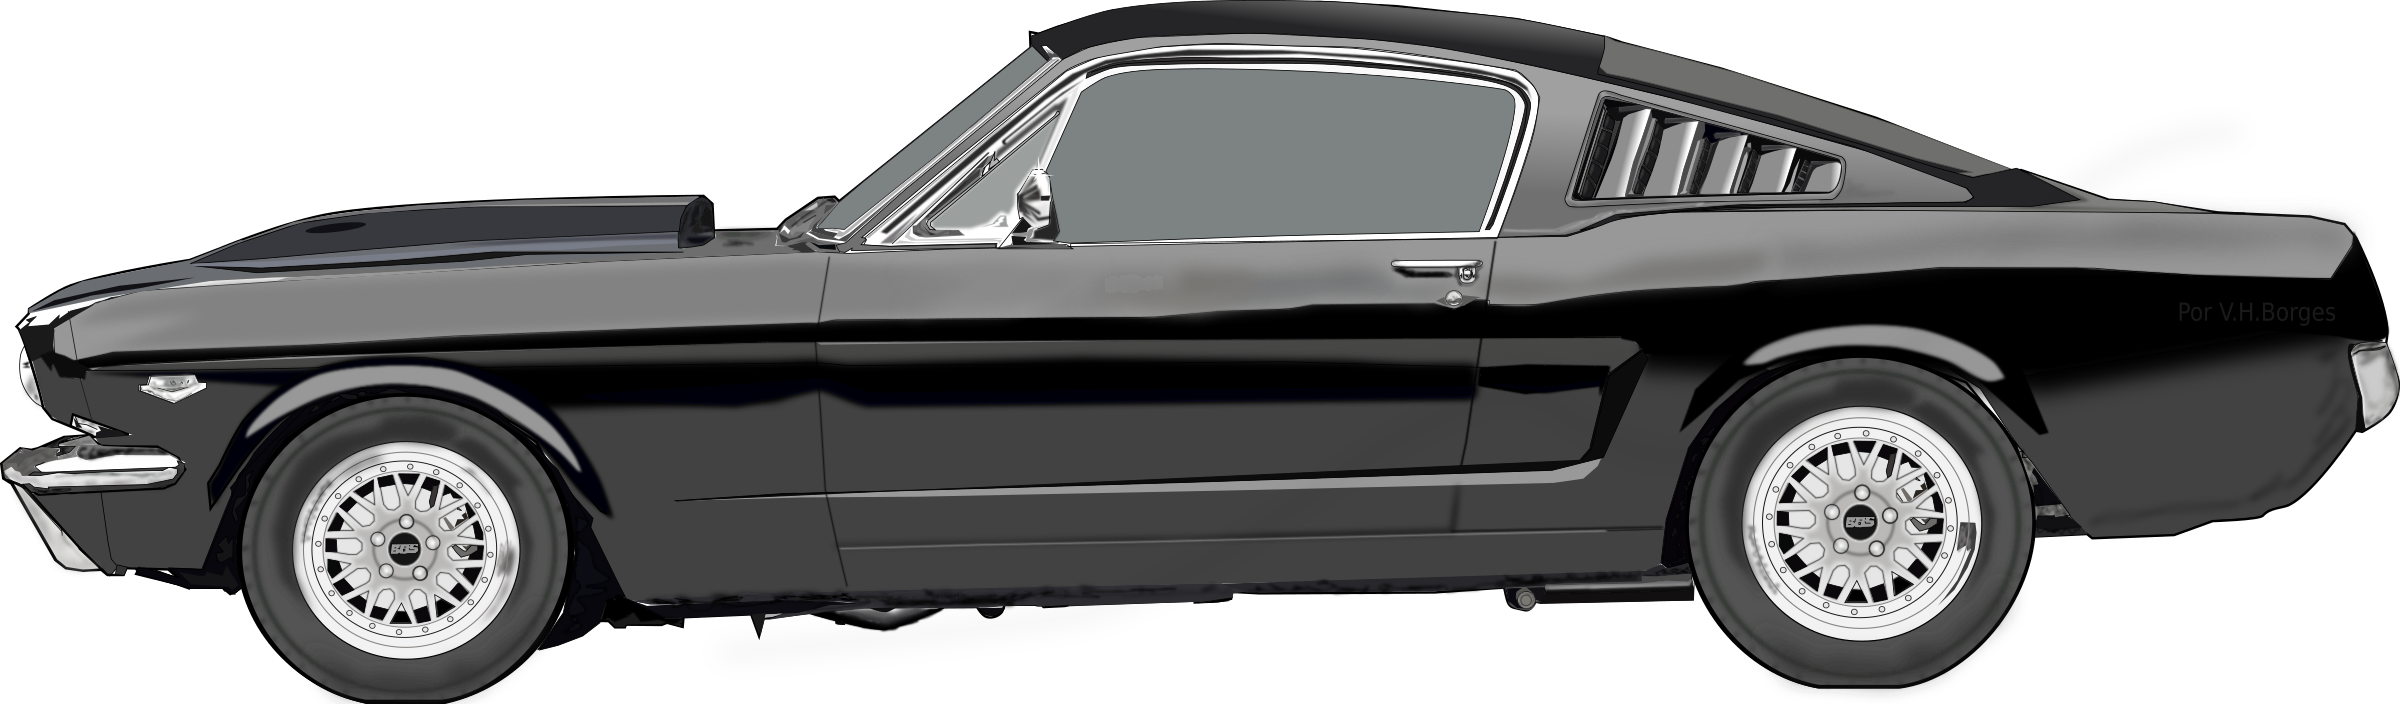 Cobra clipart shelby cobra. Ford mustang big image